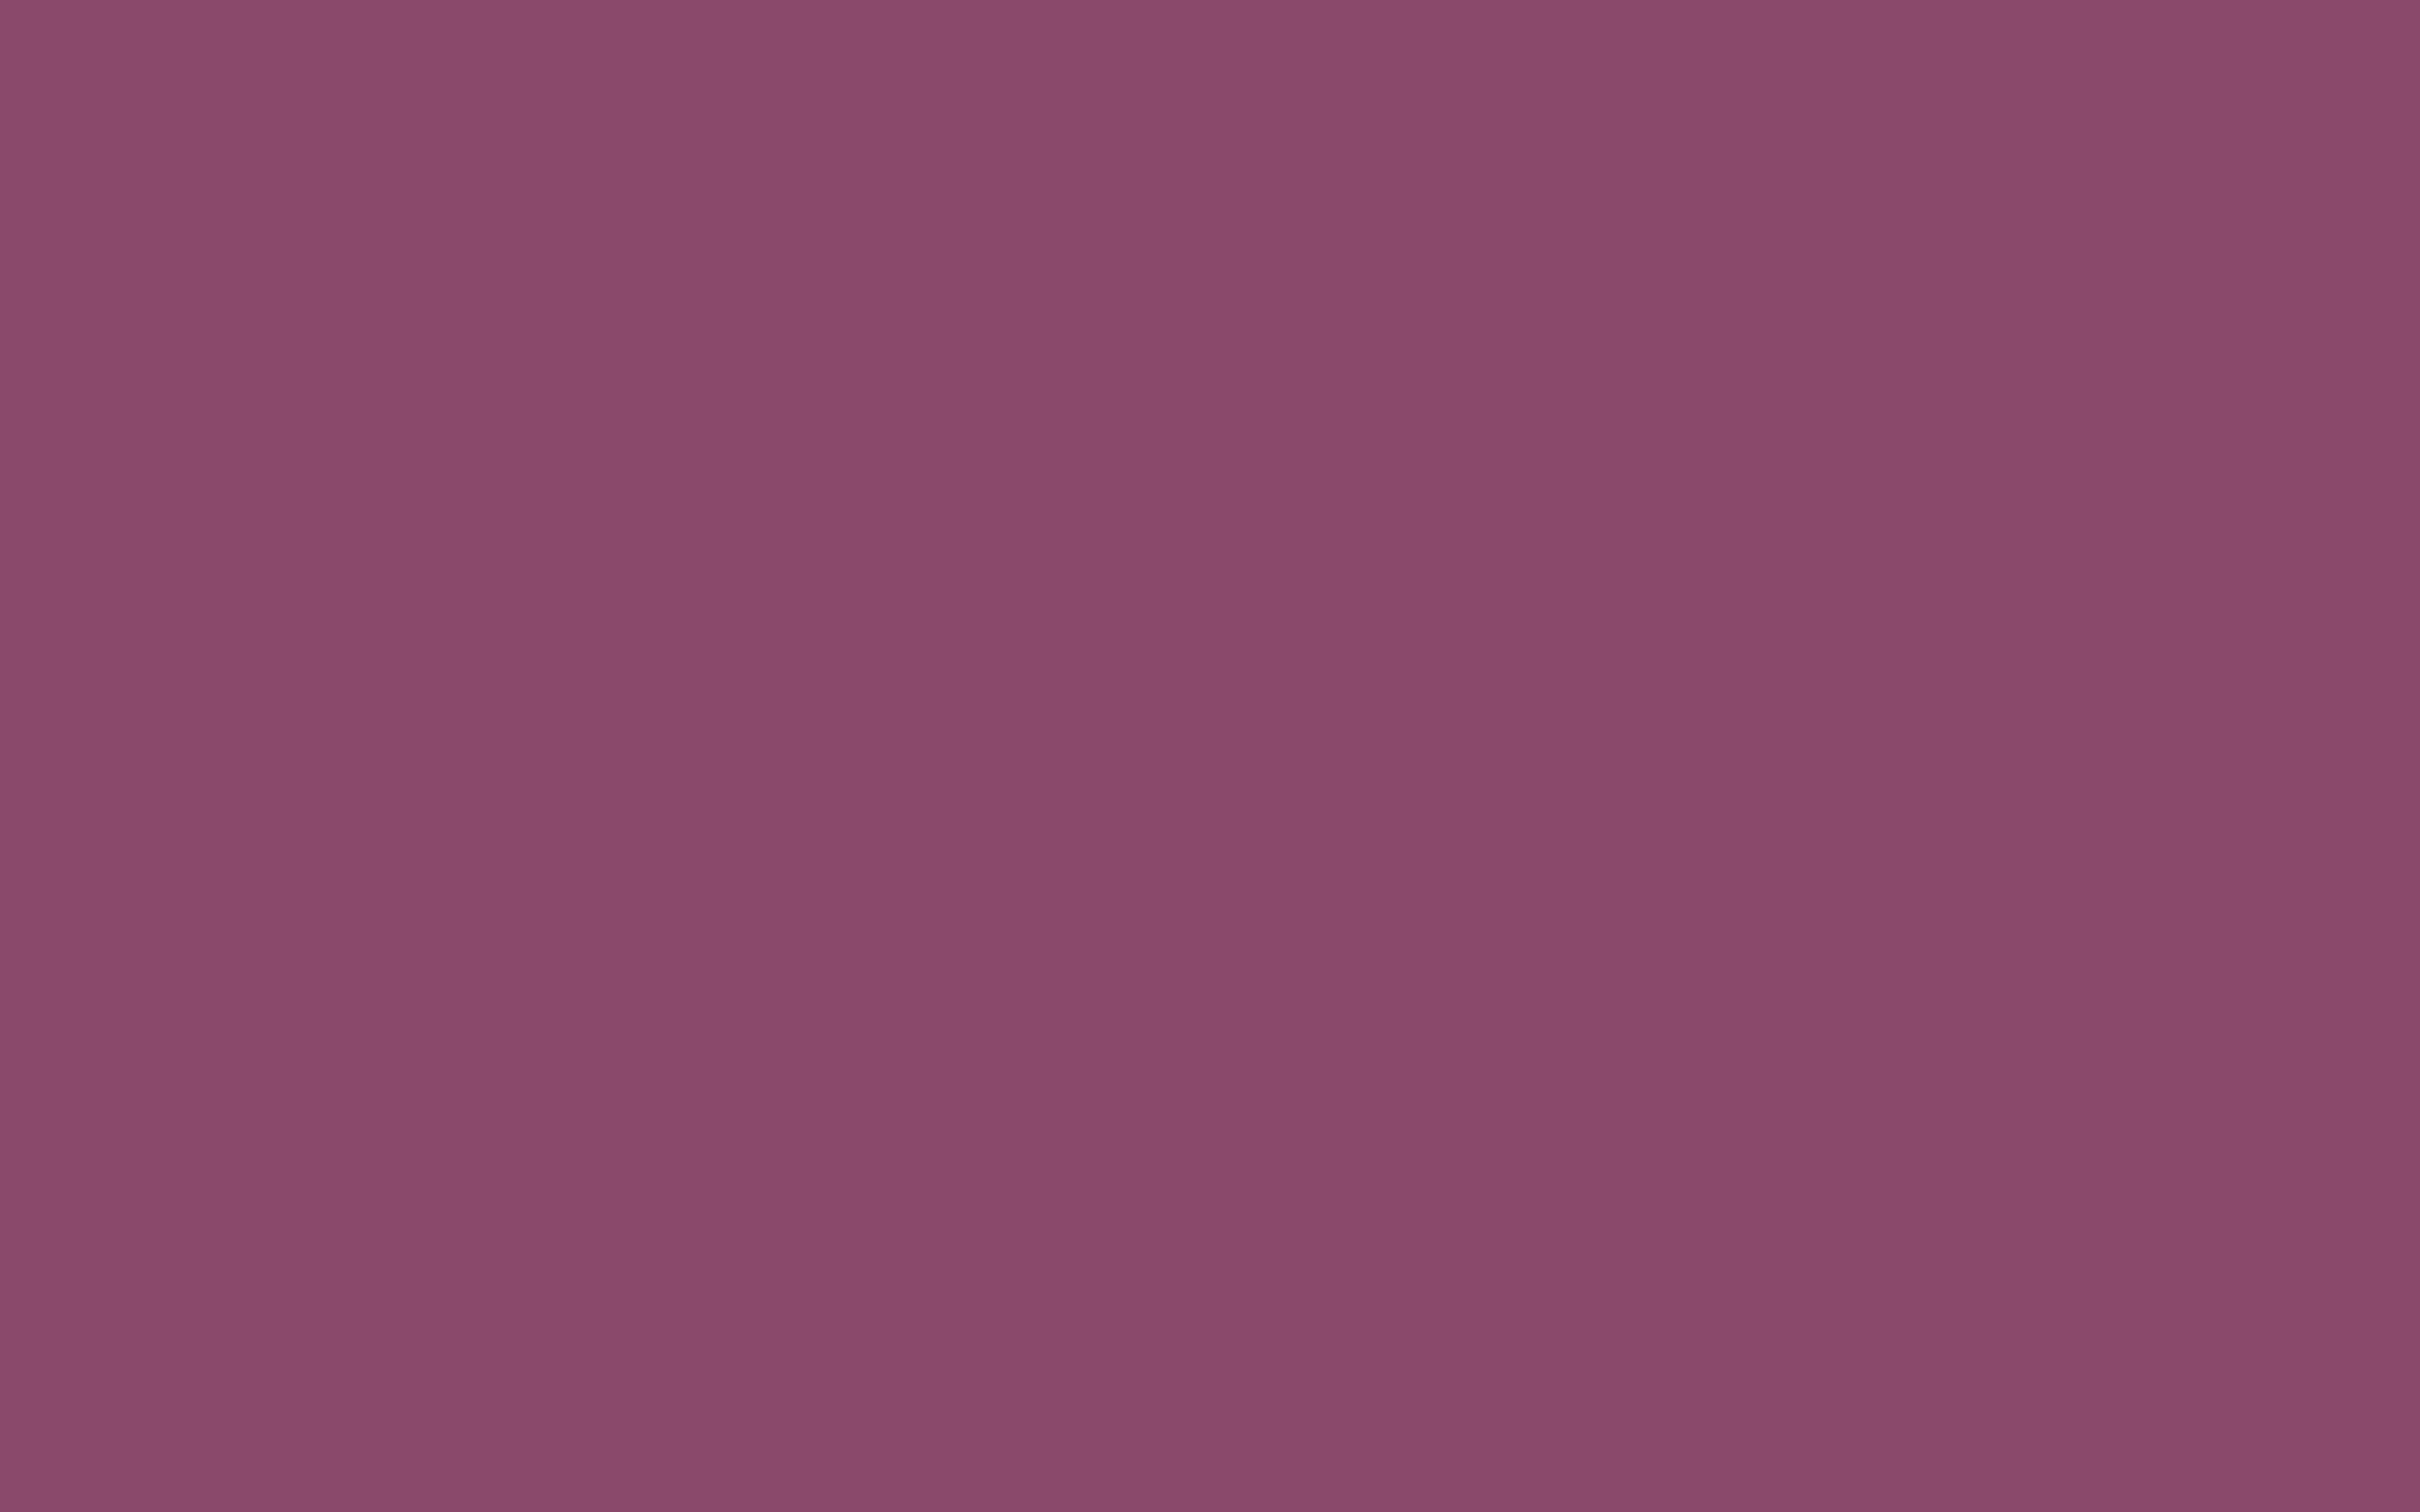 2560x1600 Twilight Lavender Solid Color Background